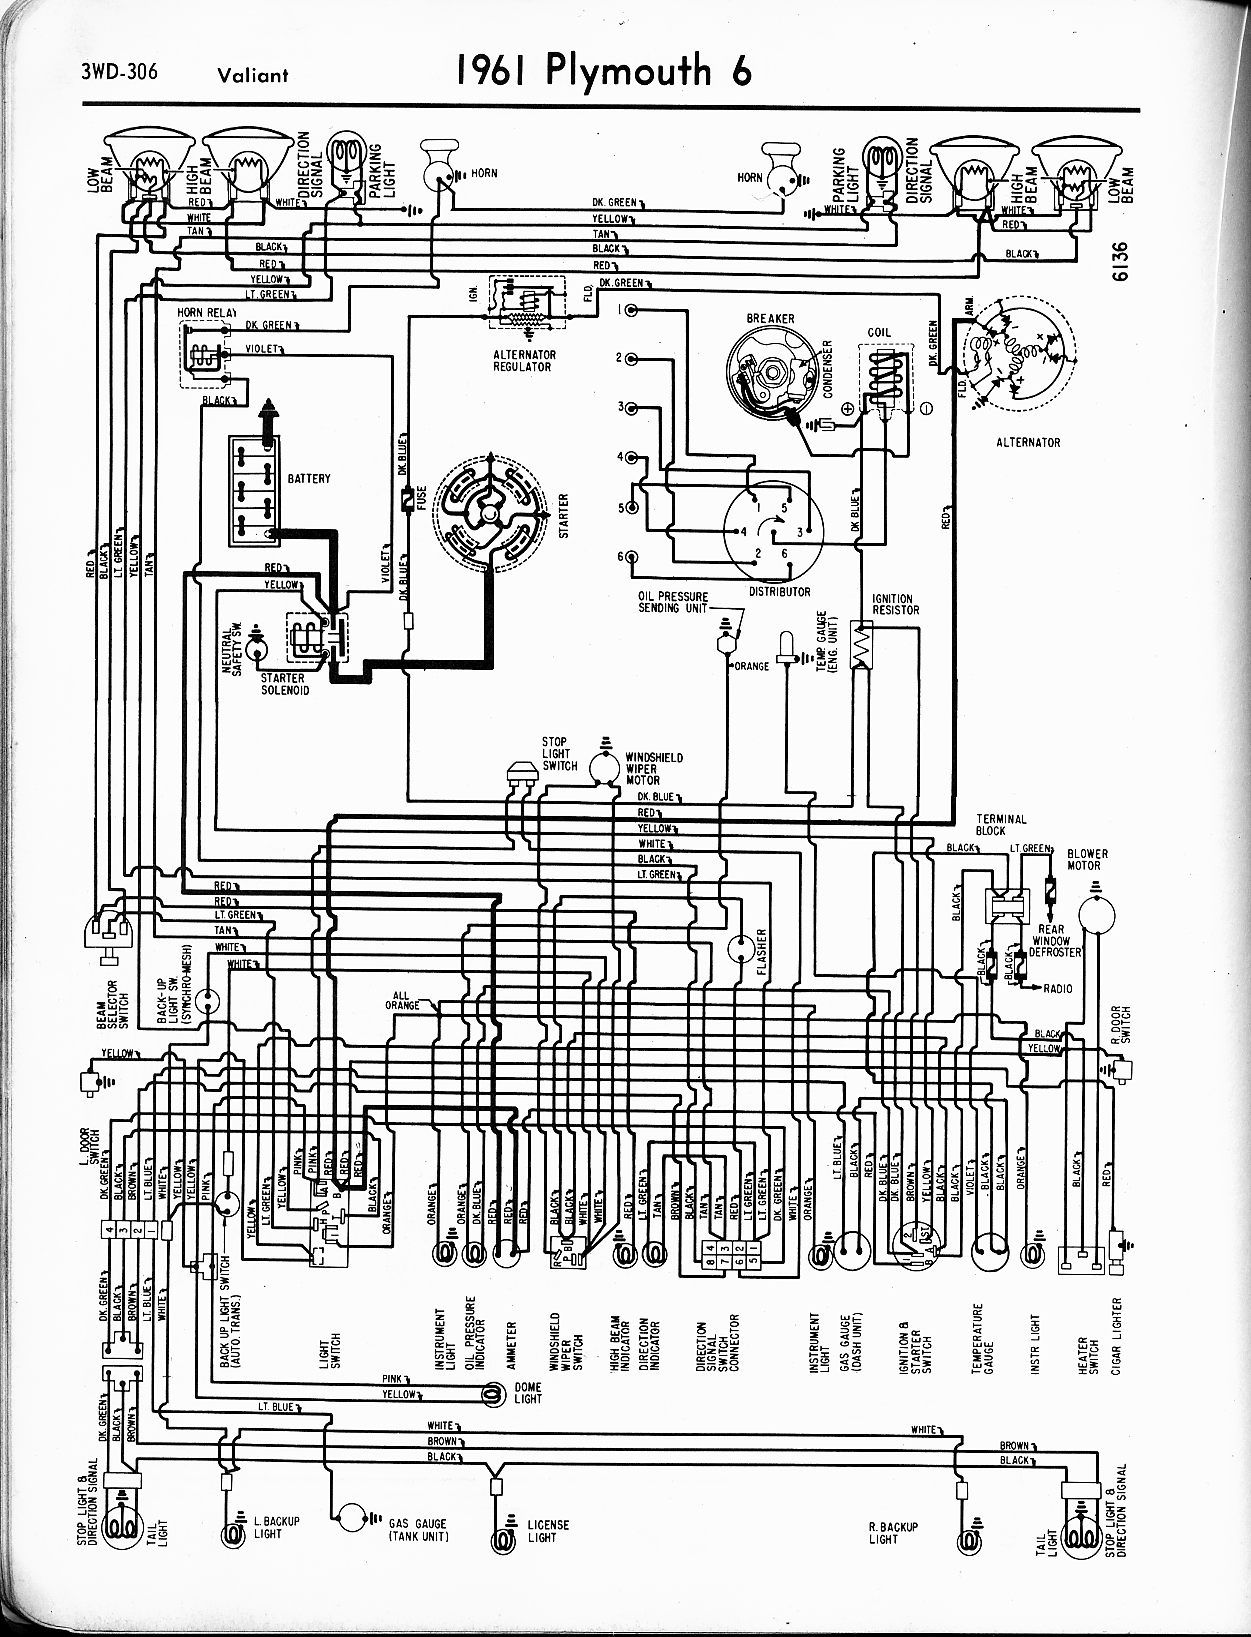 1966 Plymouth Wiring Diagram Get Free Image About on 1966 plymouth belvedere gtx